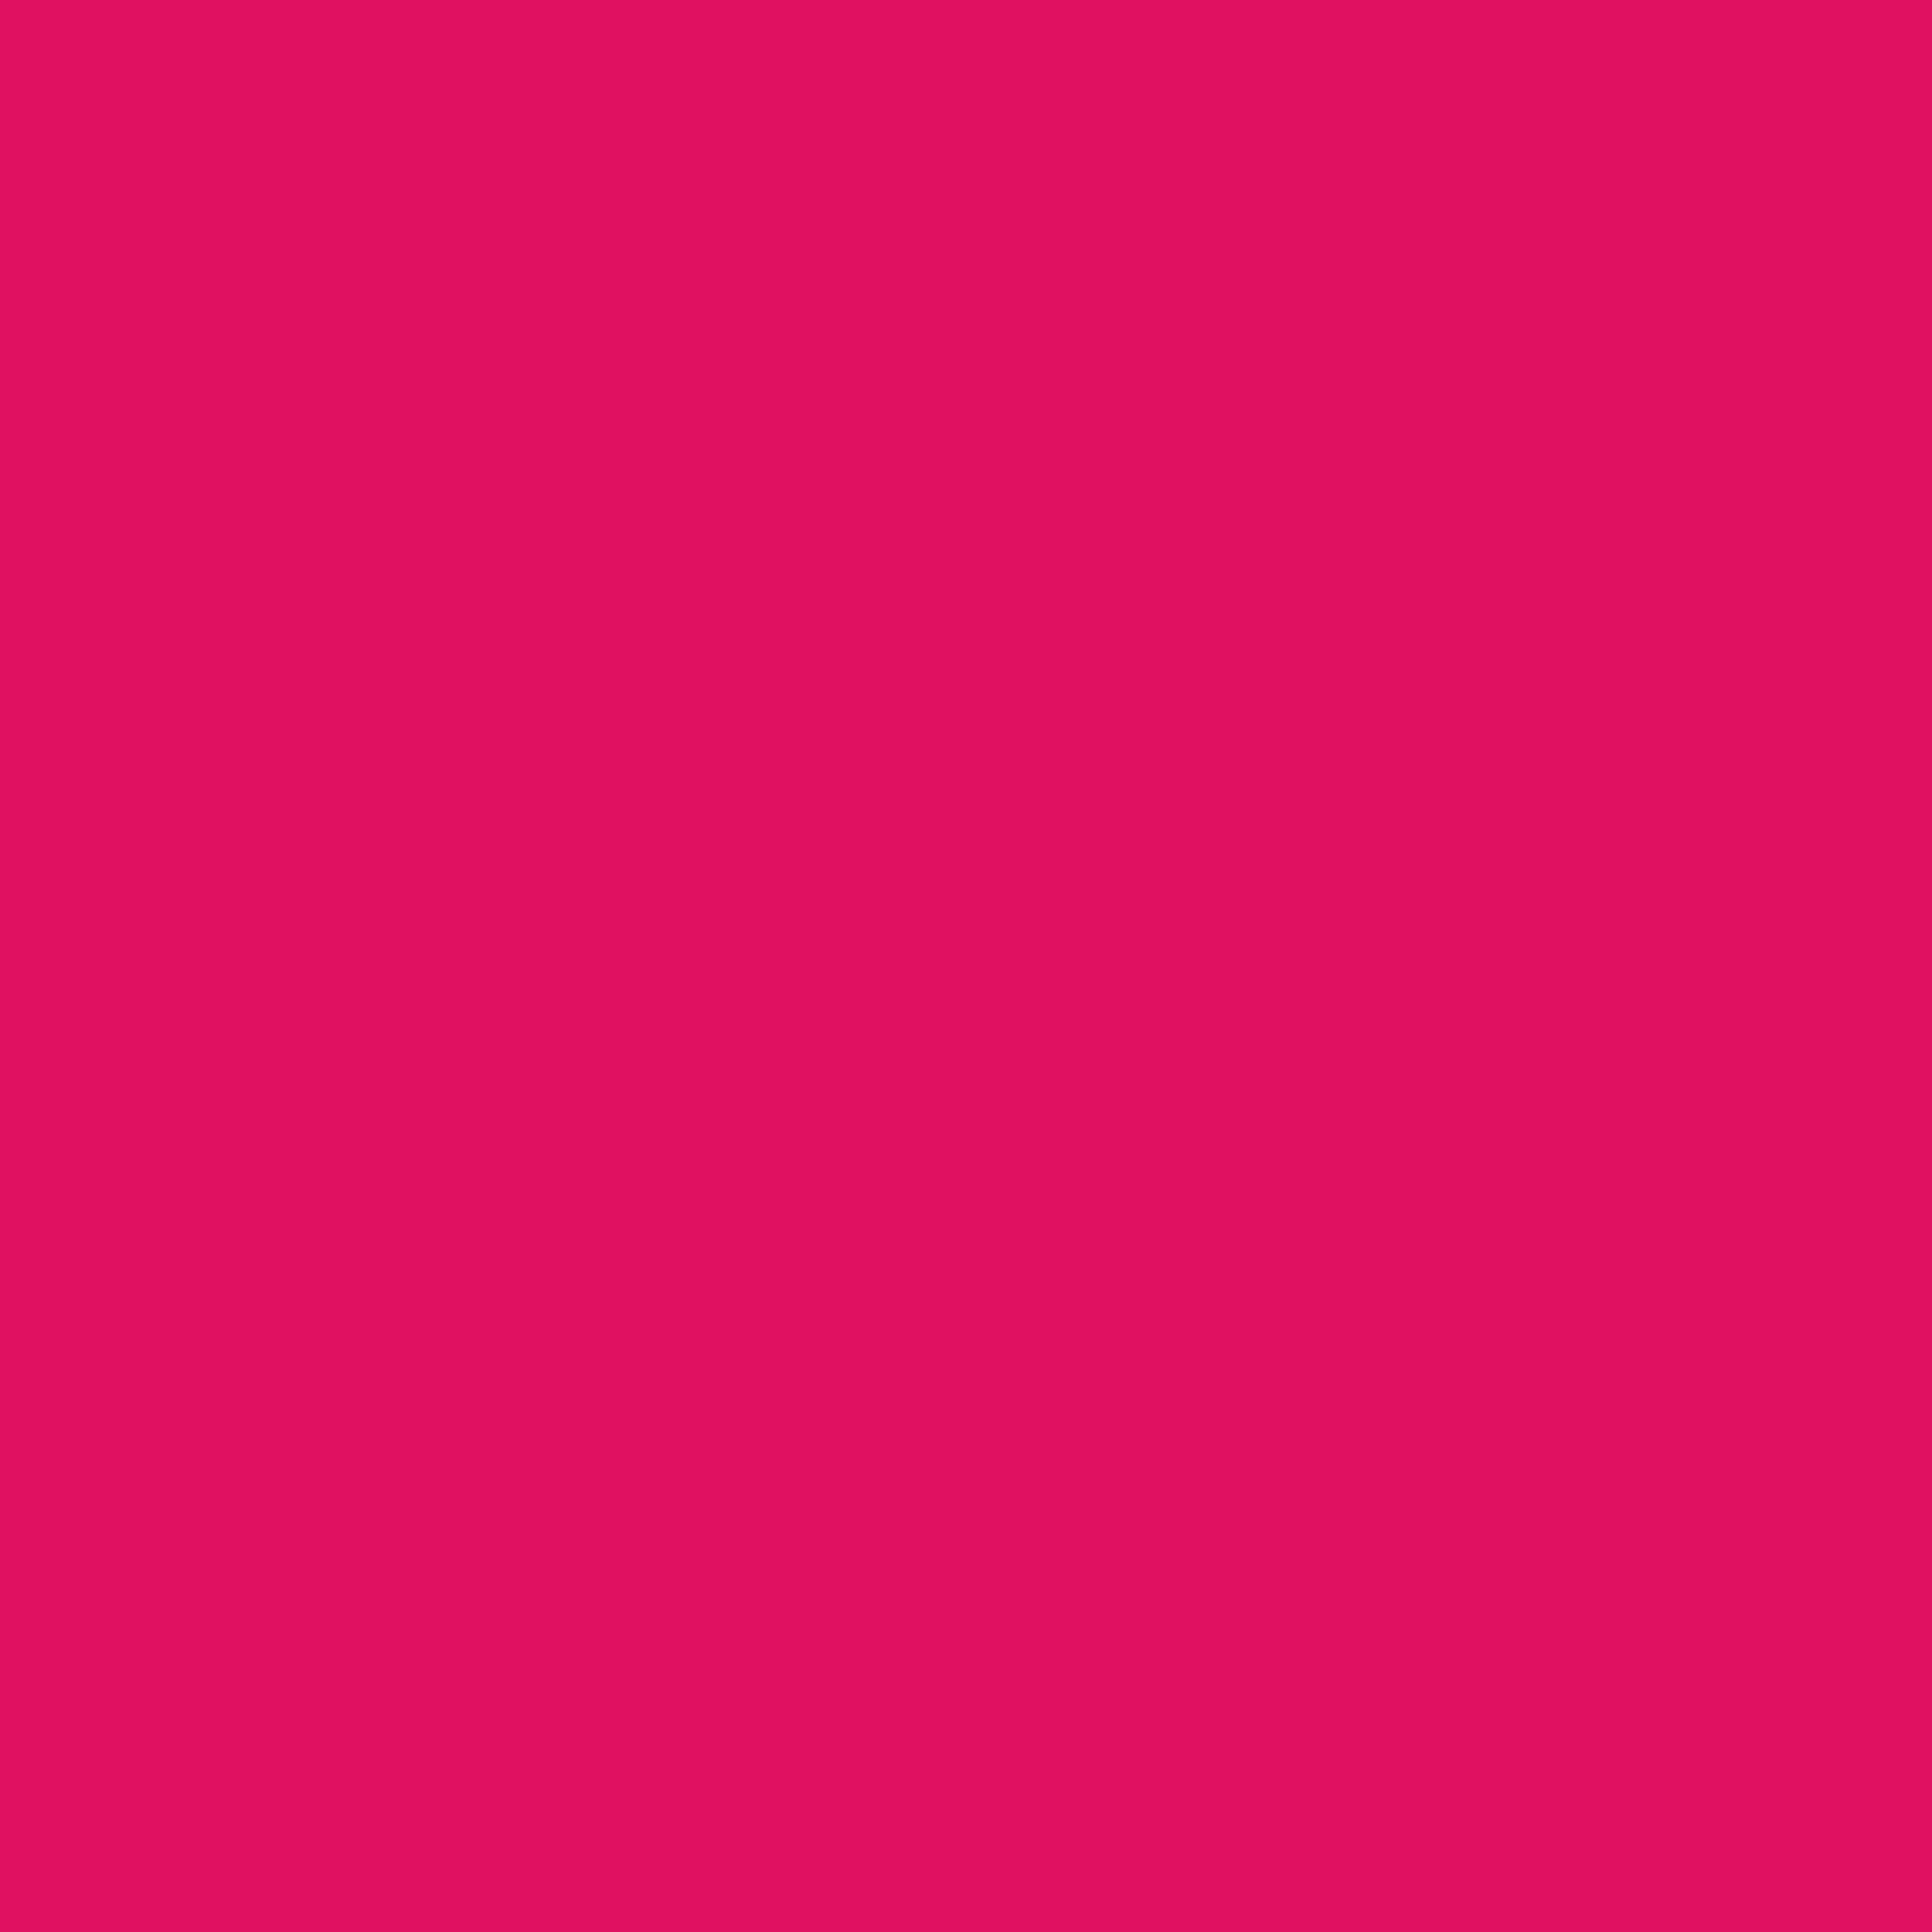 2732x2732 Ruby Solid Color Background